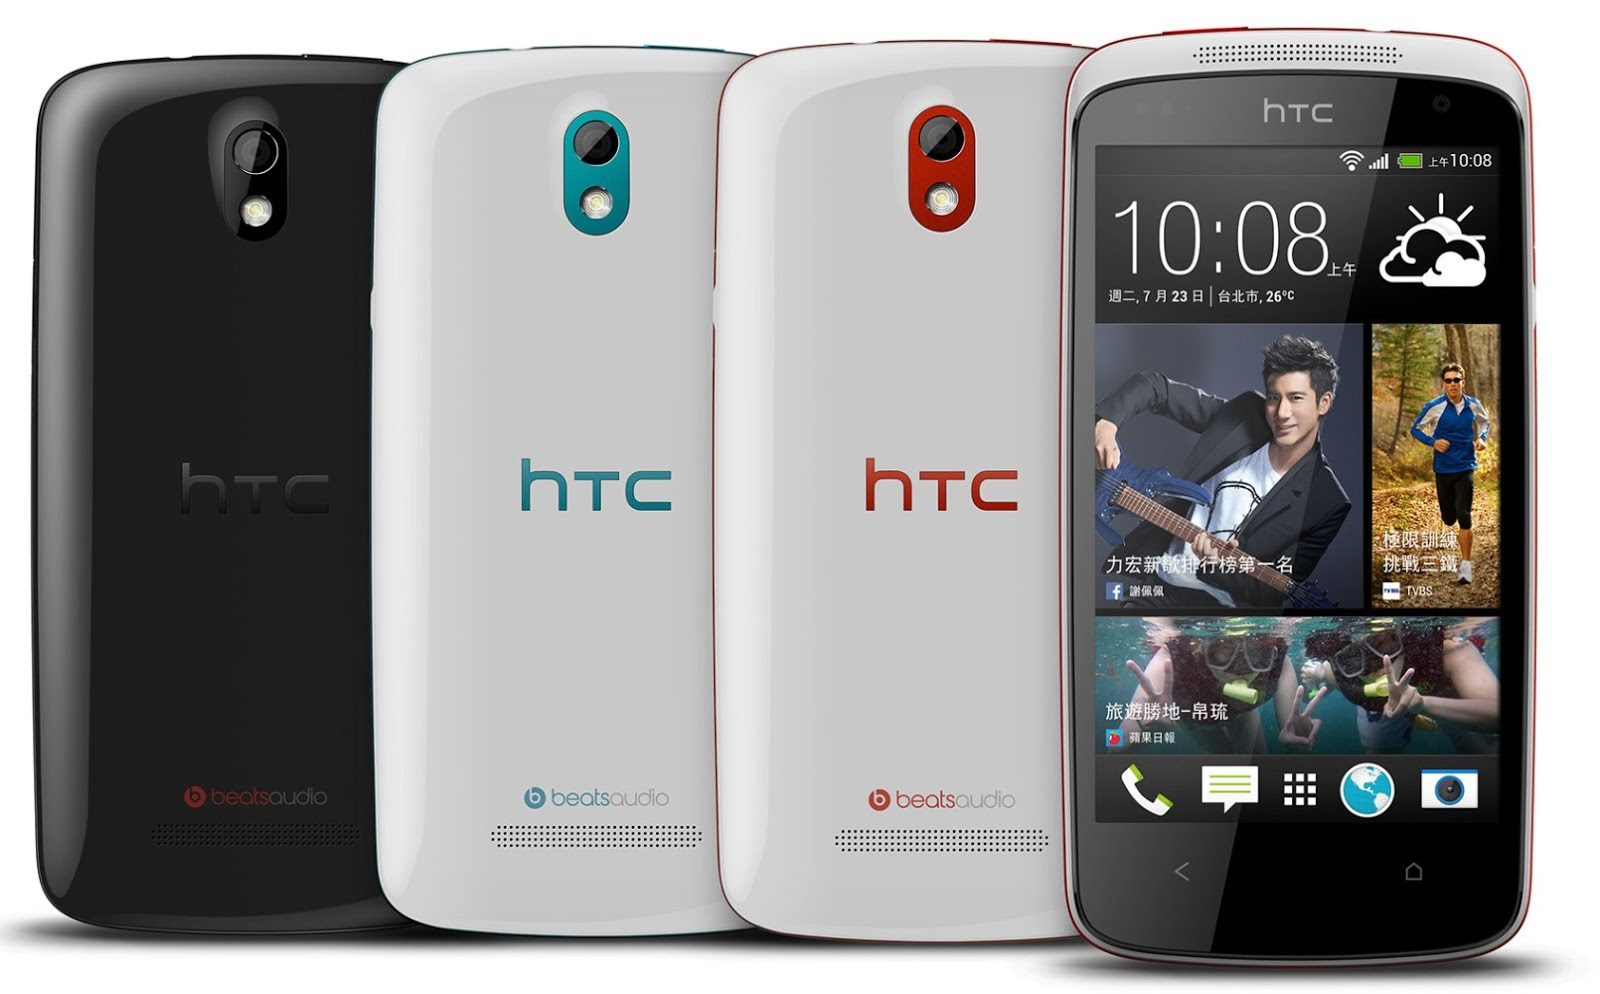 synapse circuit technology review htc desire 500. Black Bedroom Furniture Sets. Home Design Ideas